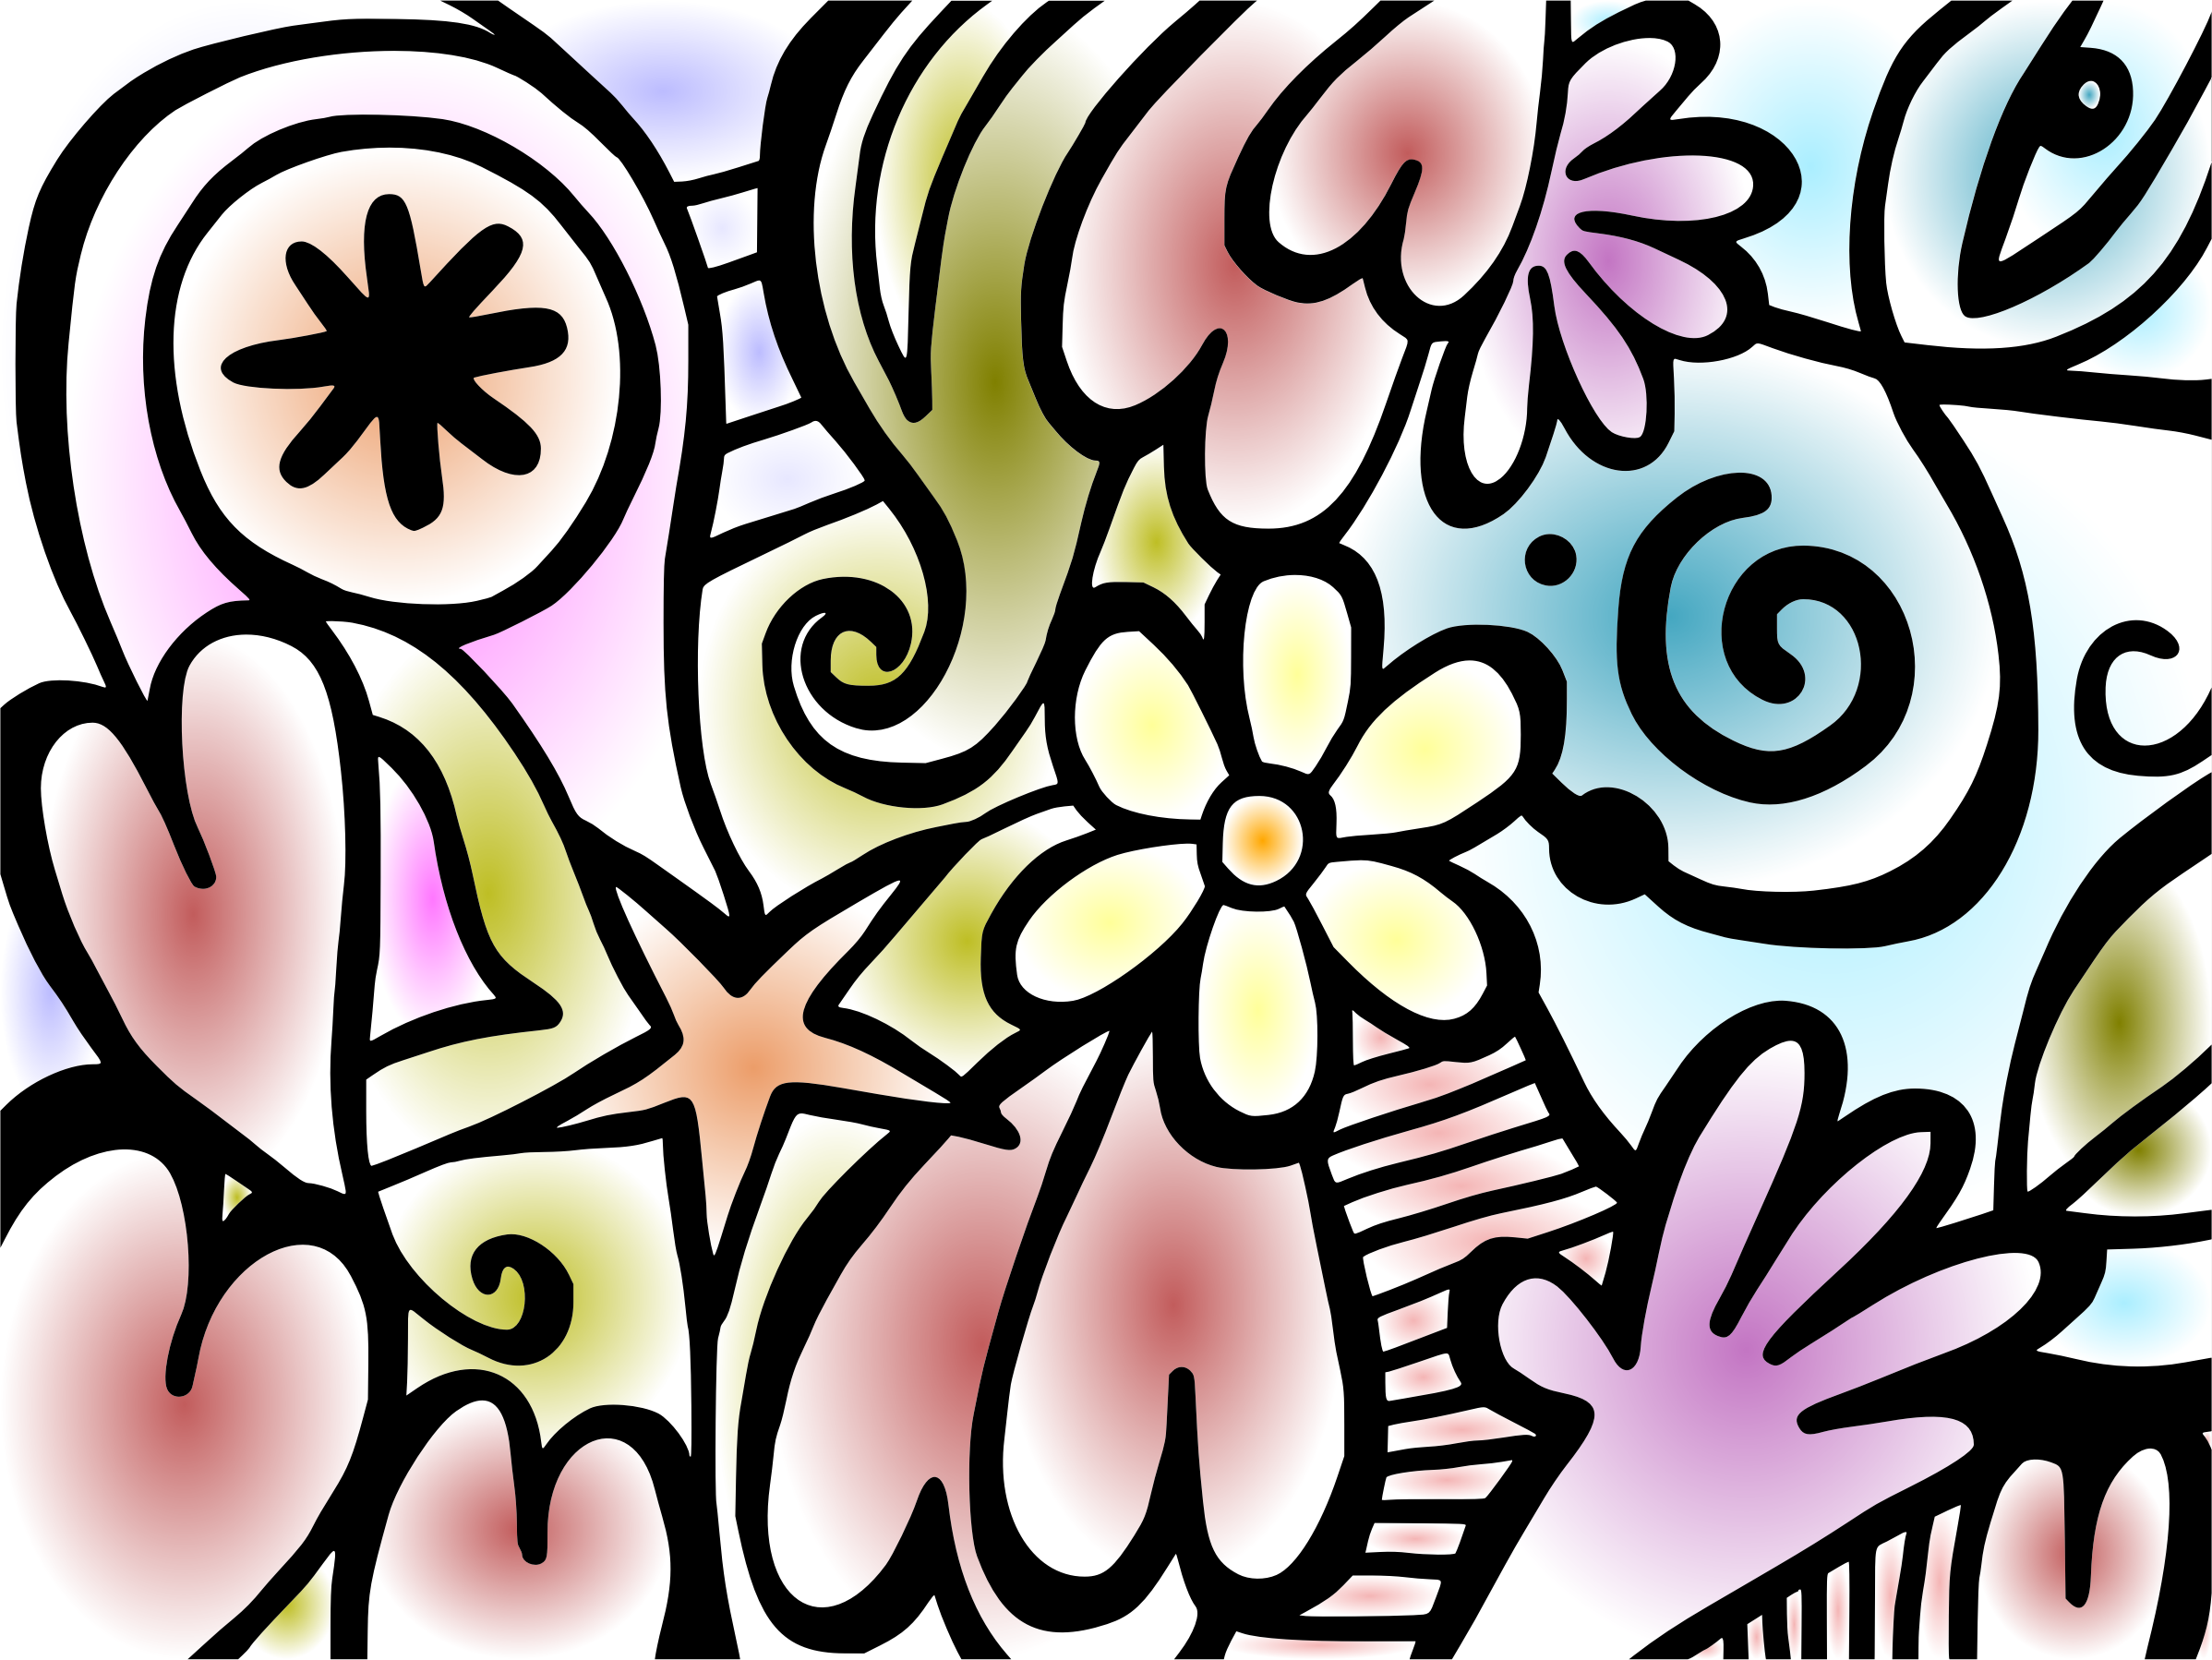 Background pattern 211 (colour 4) by Firkin